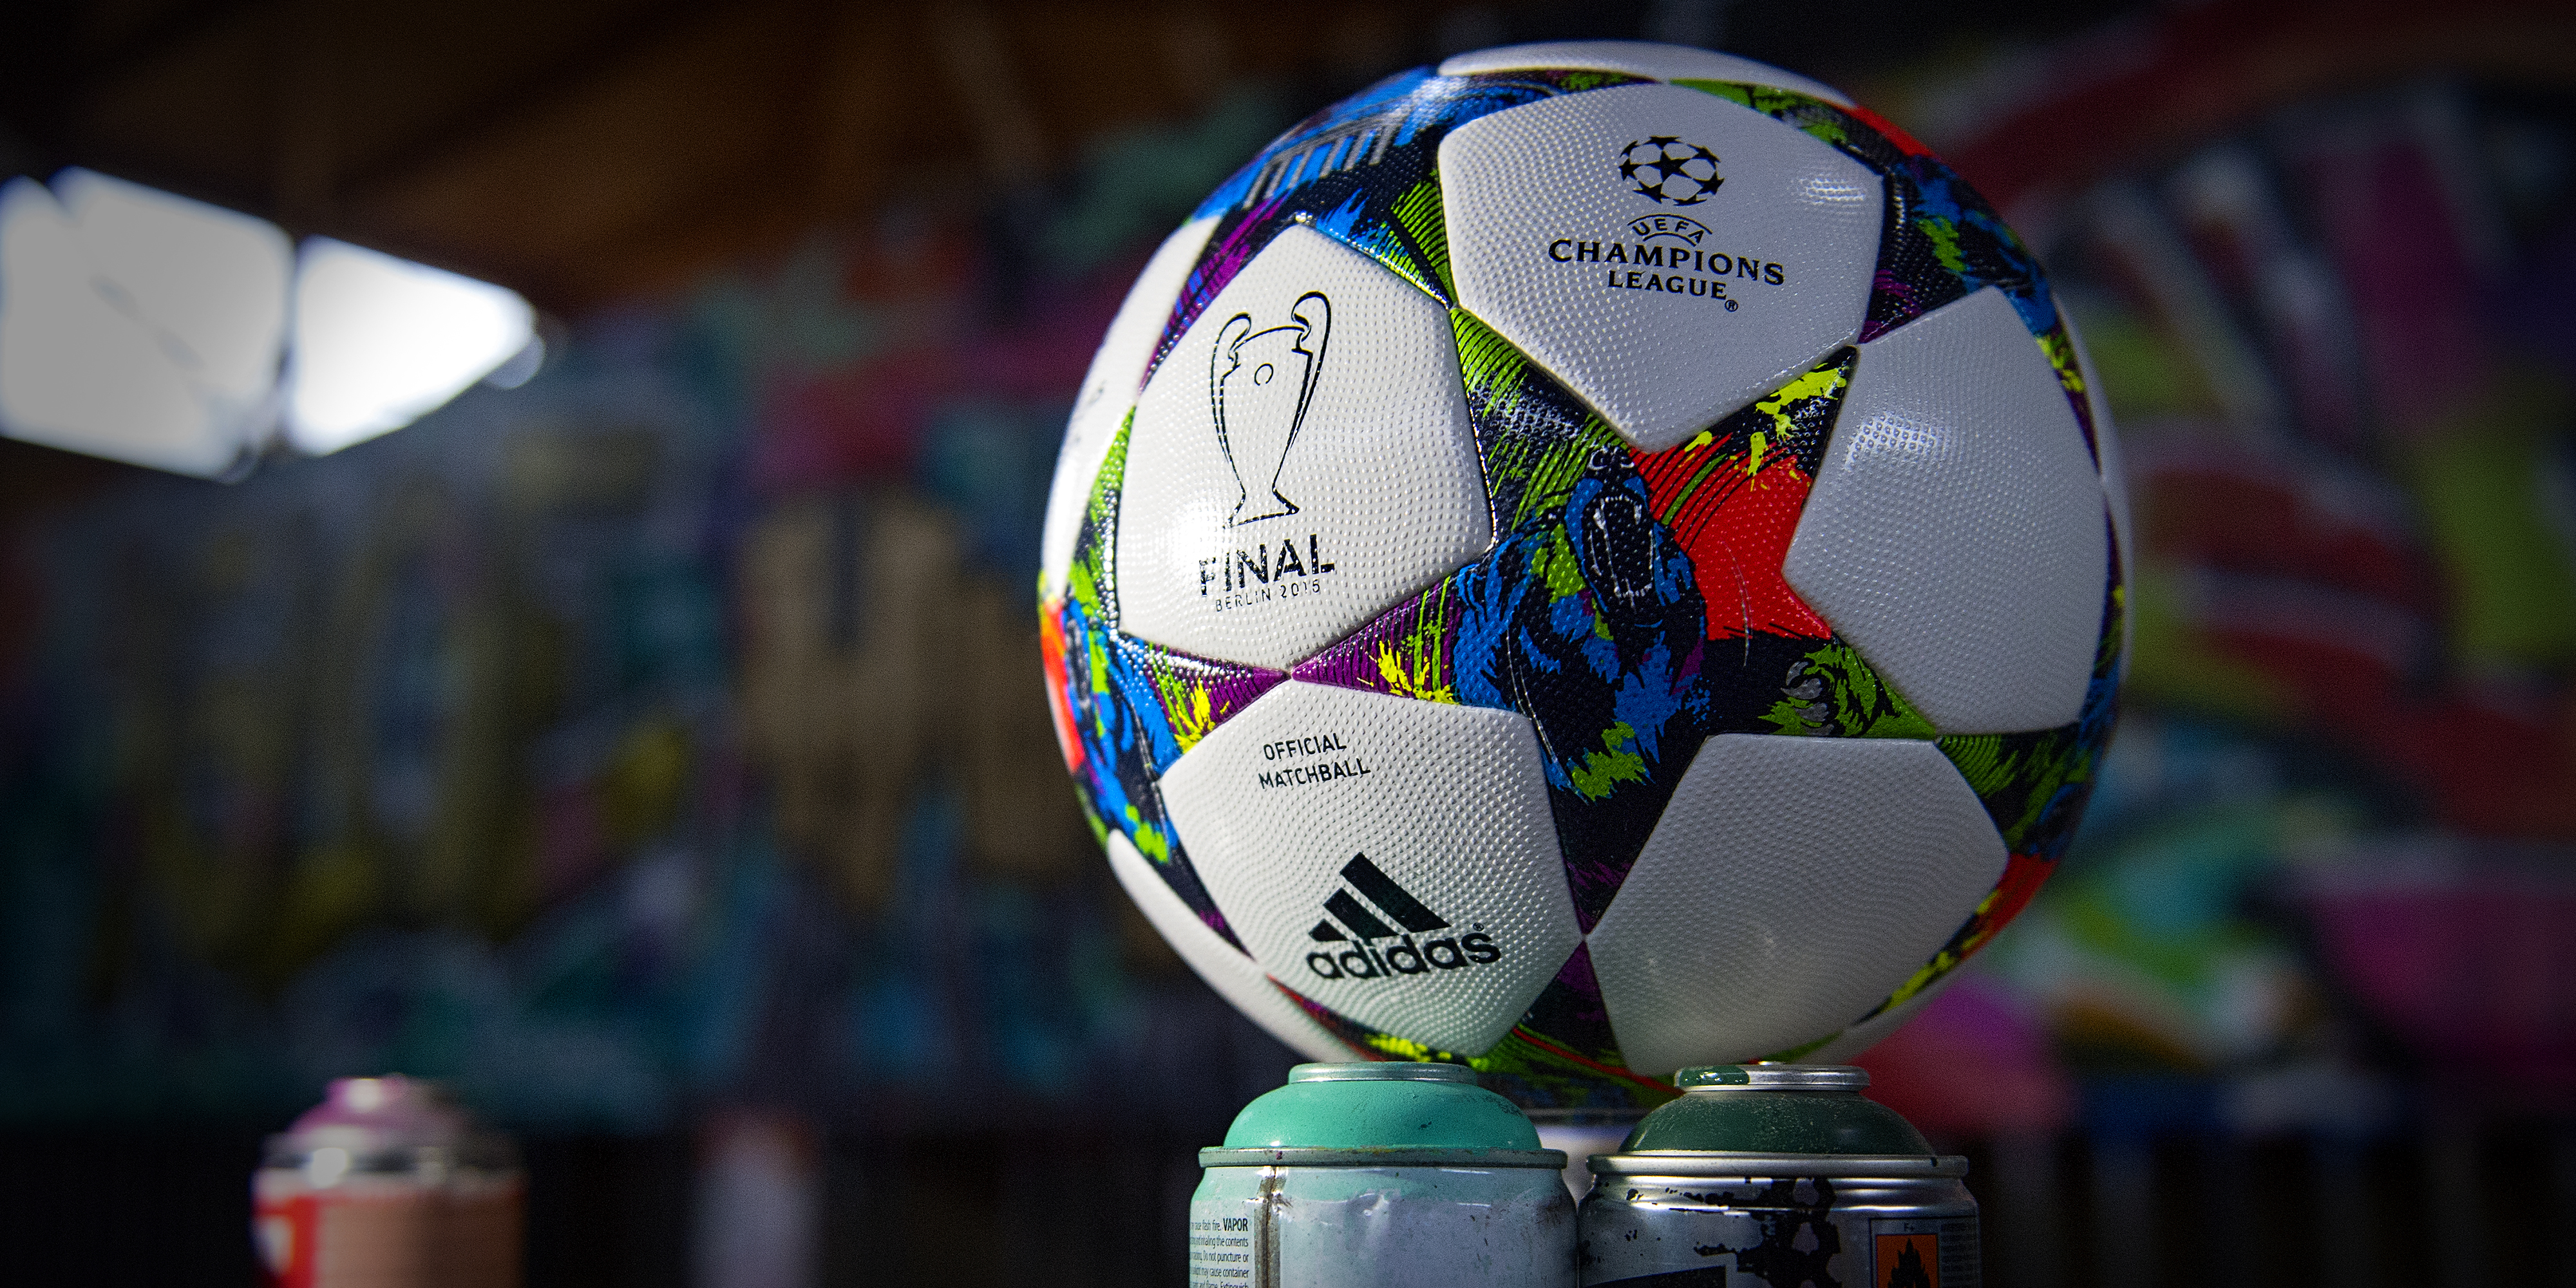 Schedule Of Champions League Quarter Finals On TV World